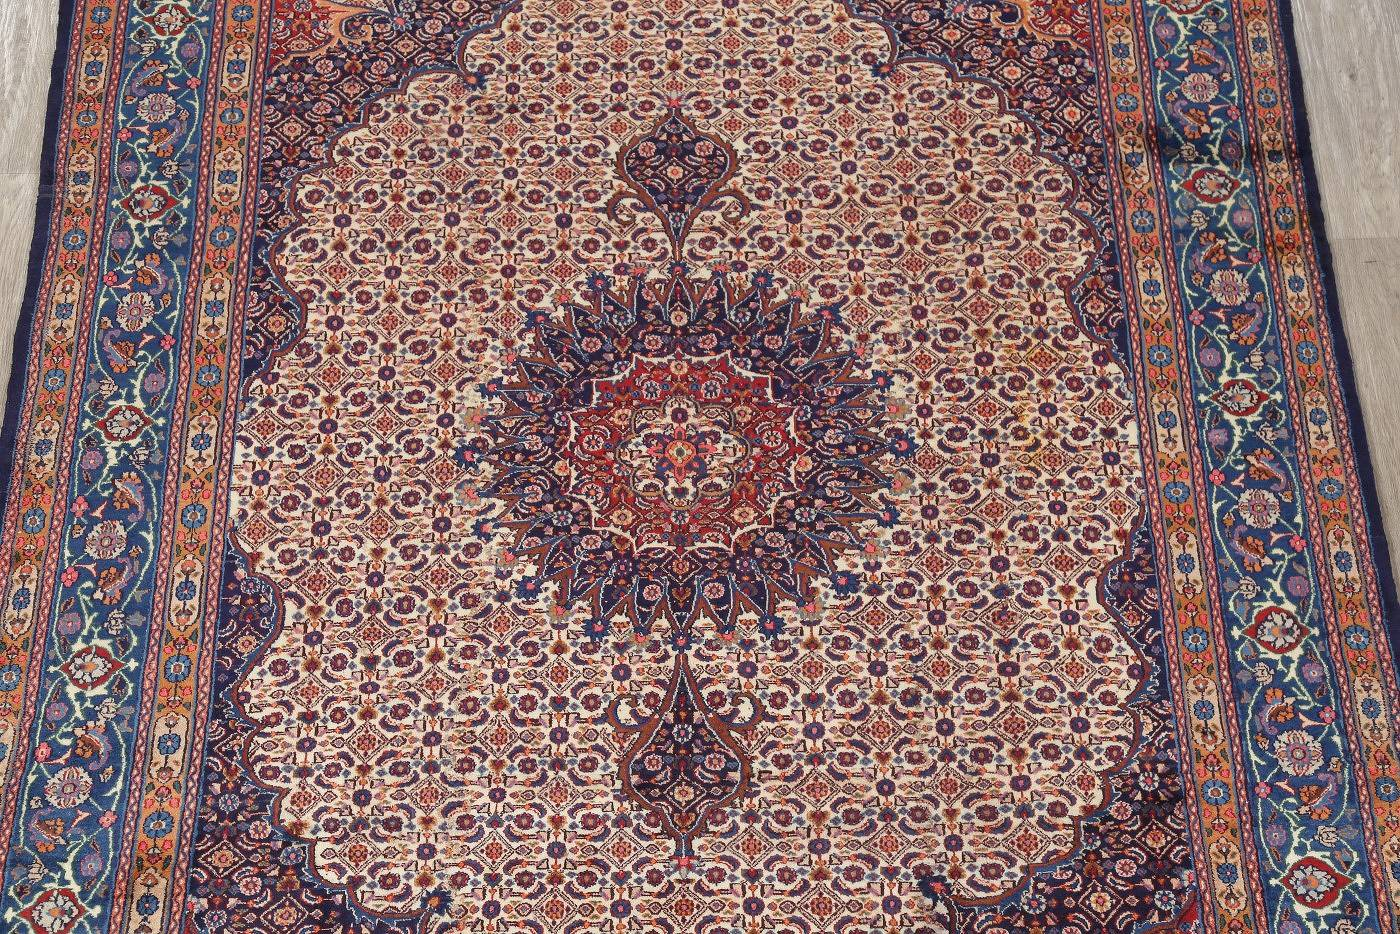 Traditional Floral Mood Persian Hand-Knotted 7x9 Wool Area Rug